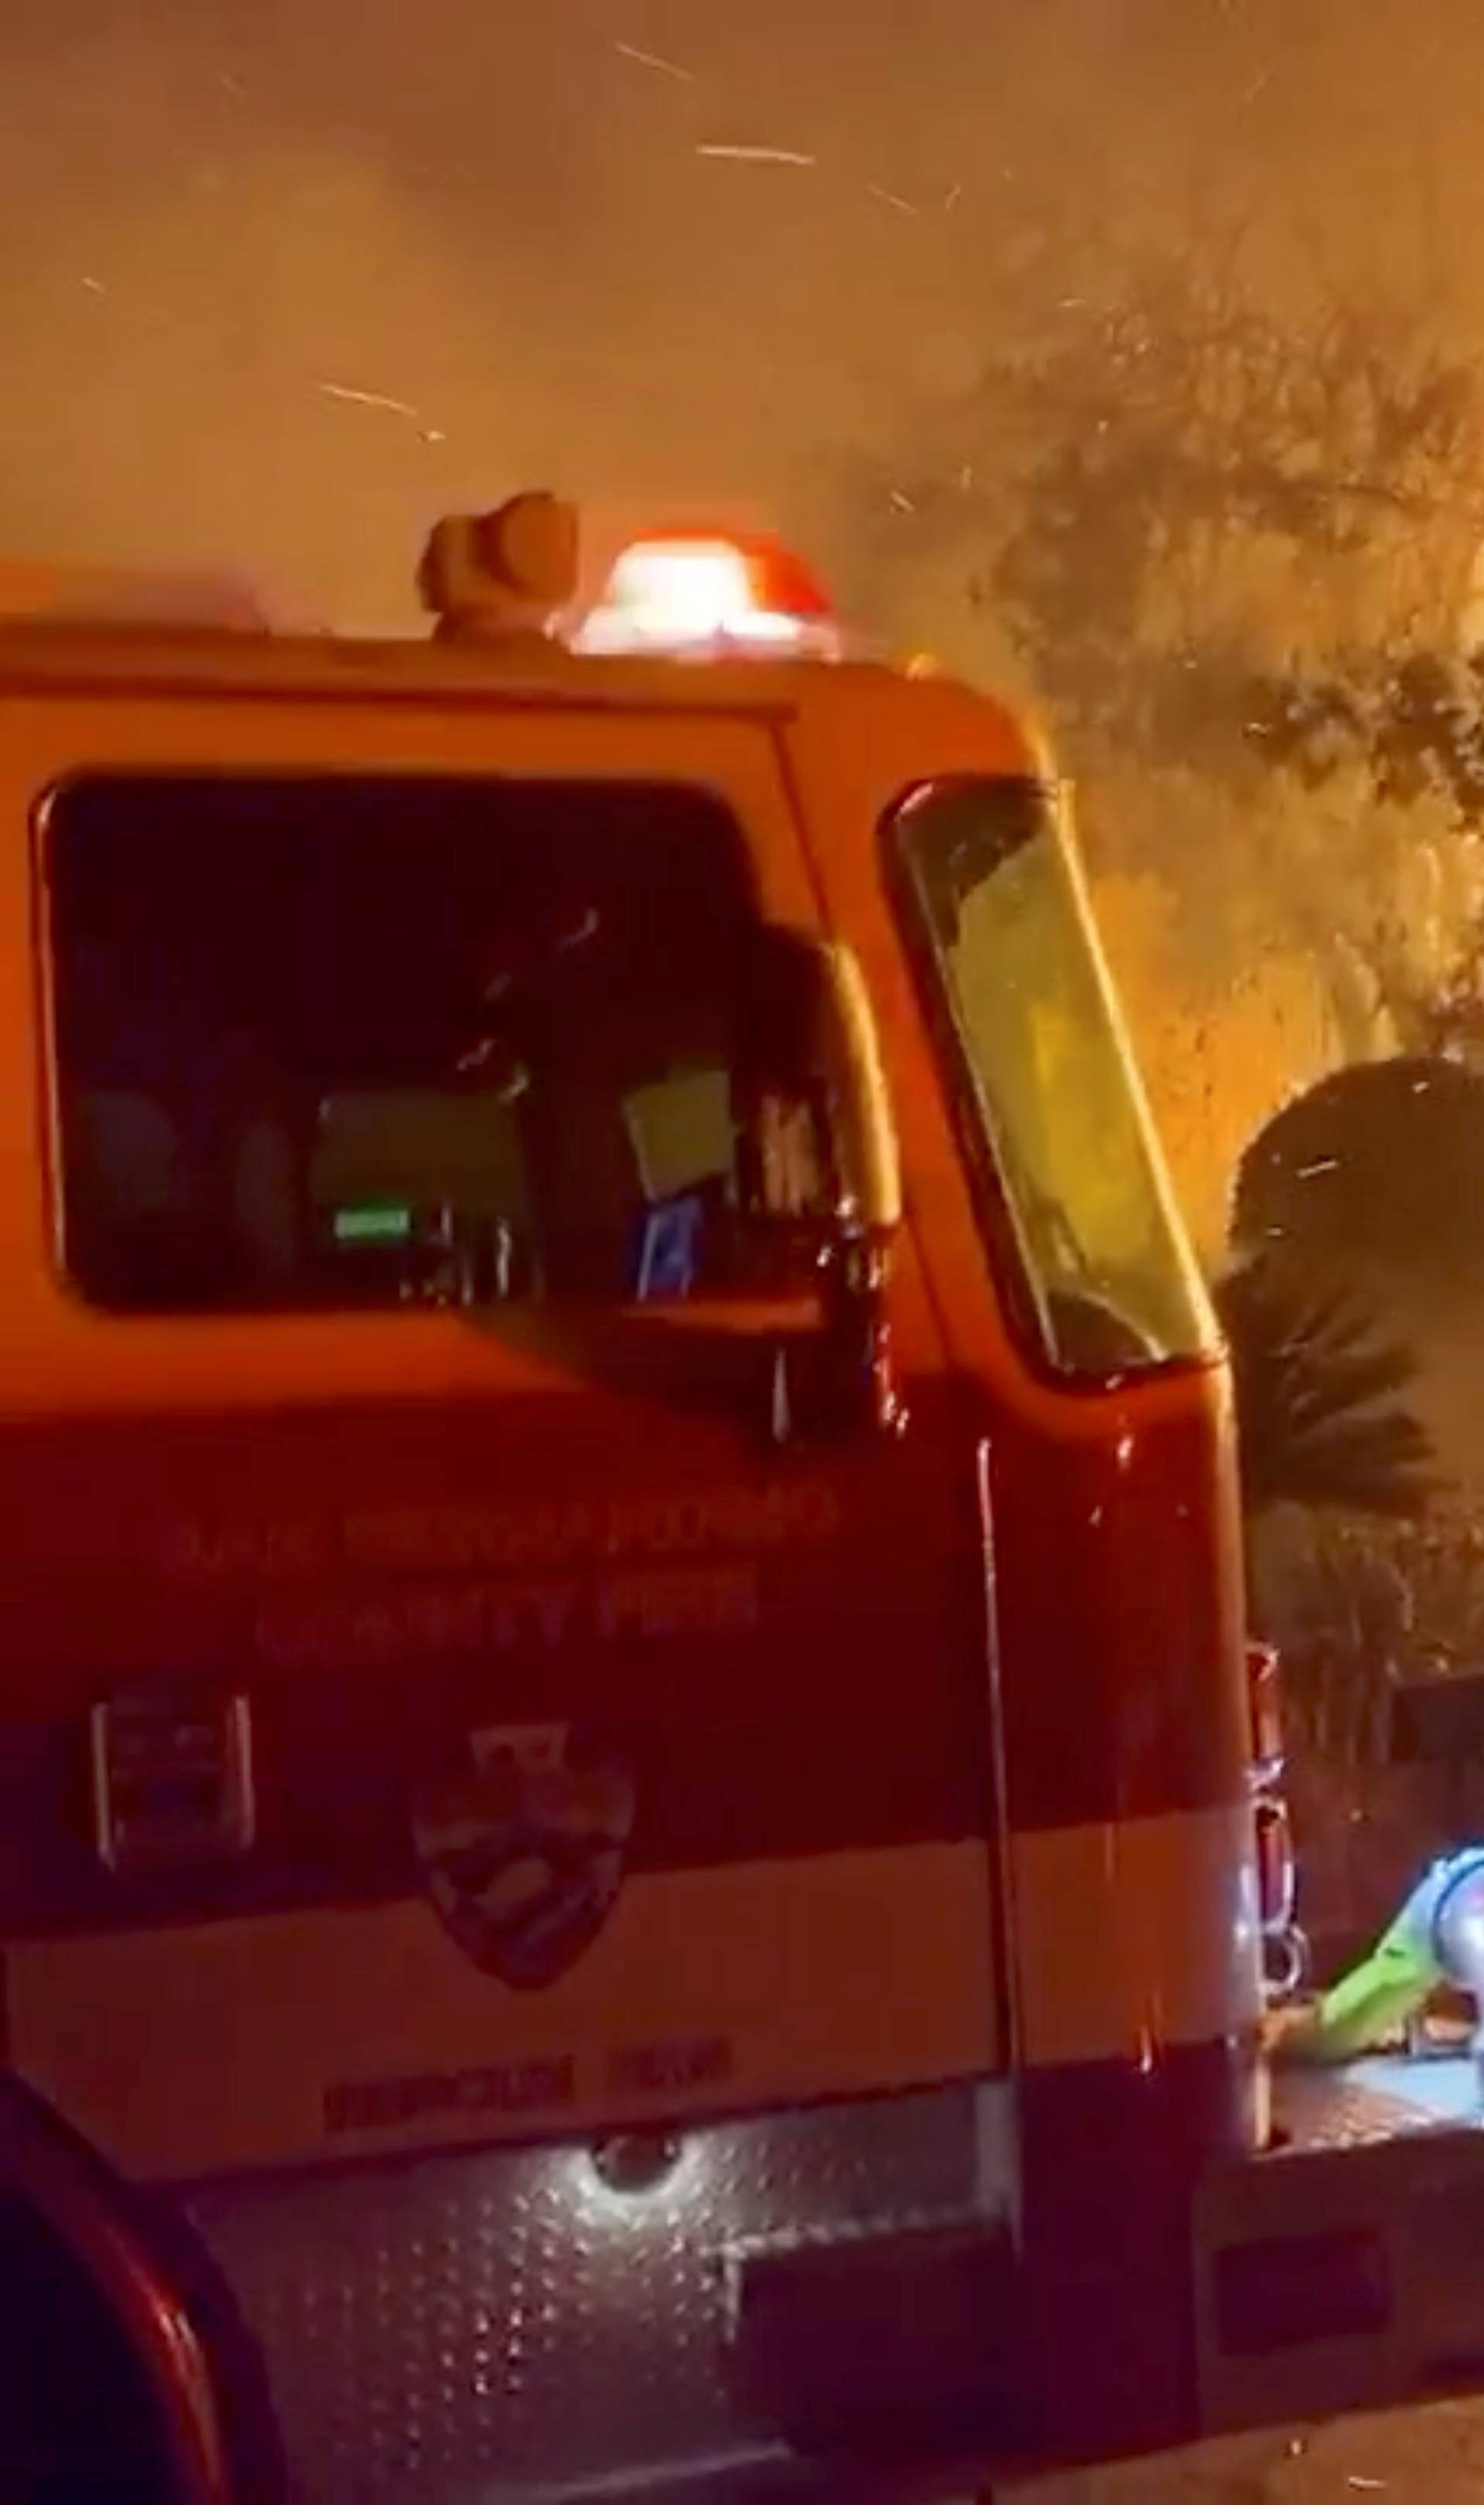 A firefighter passes by a fire engine in front of a burning house during wildfires in San Bernardino, California